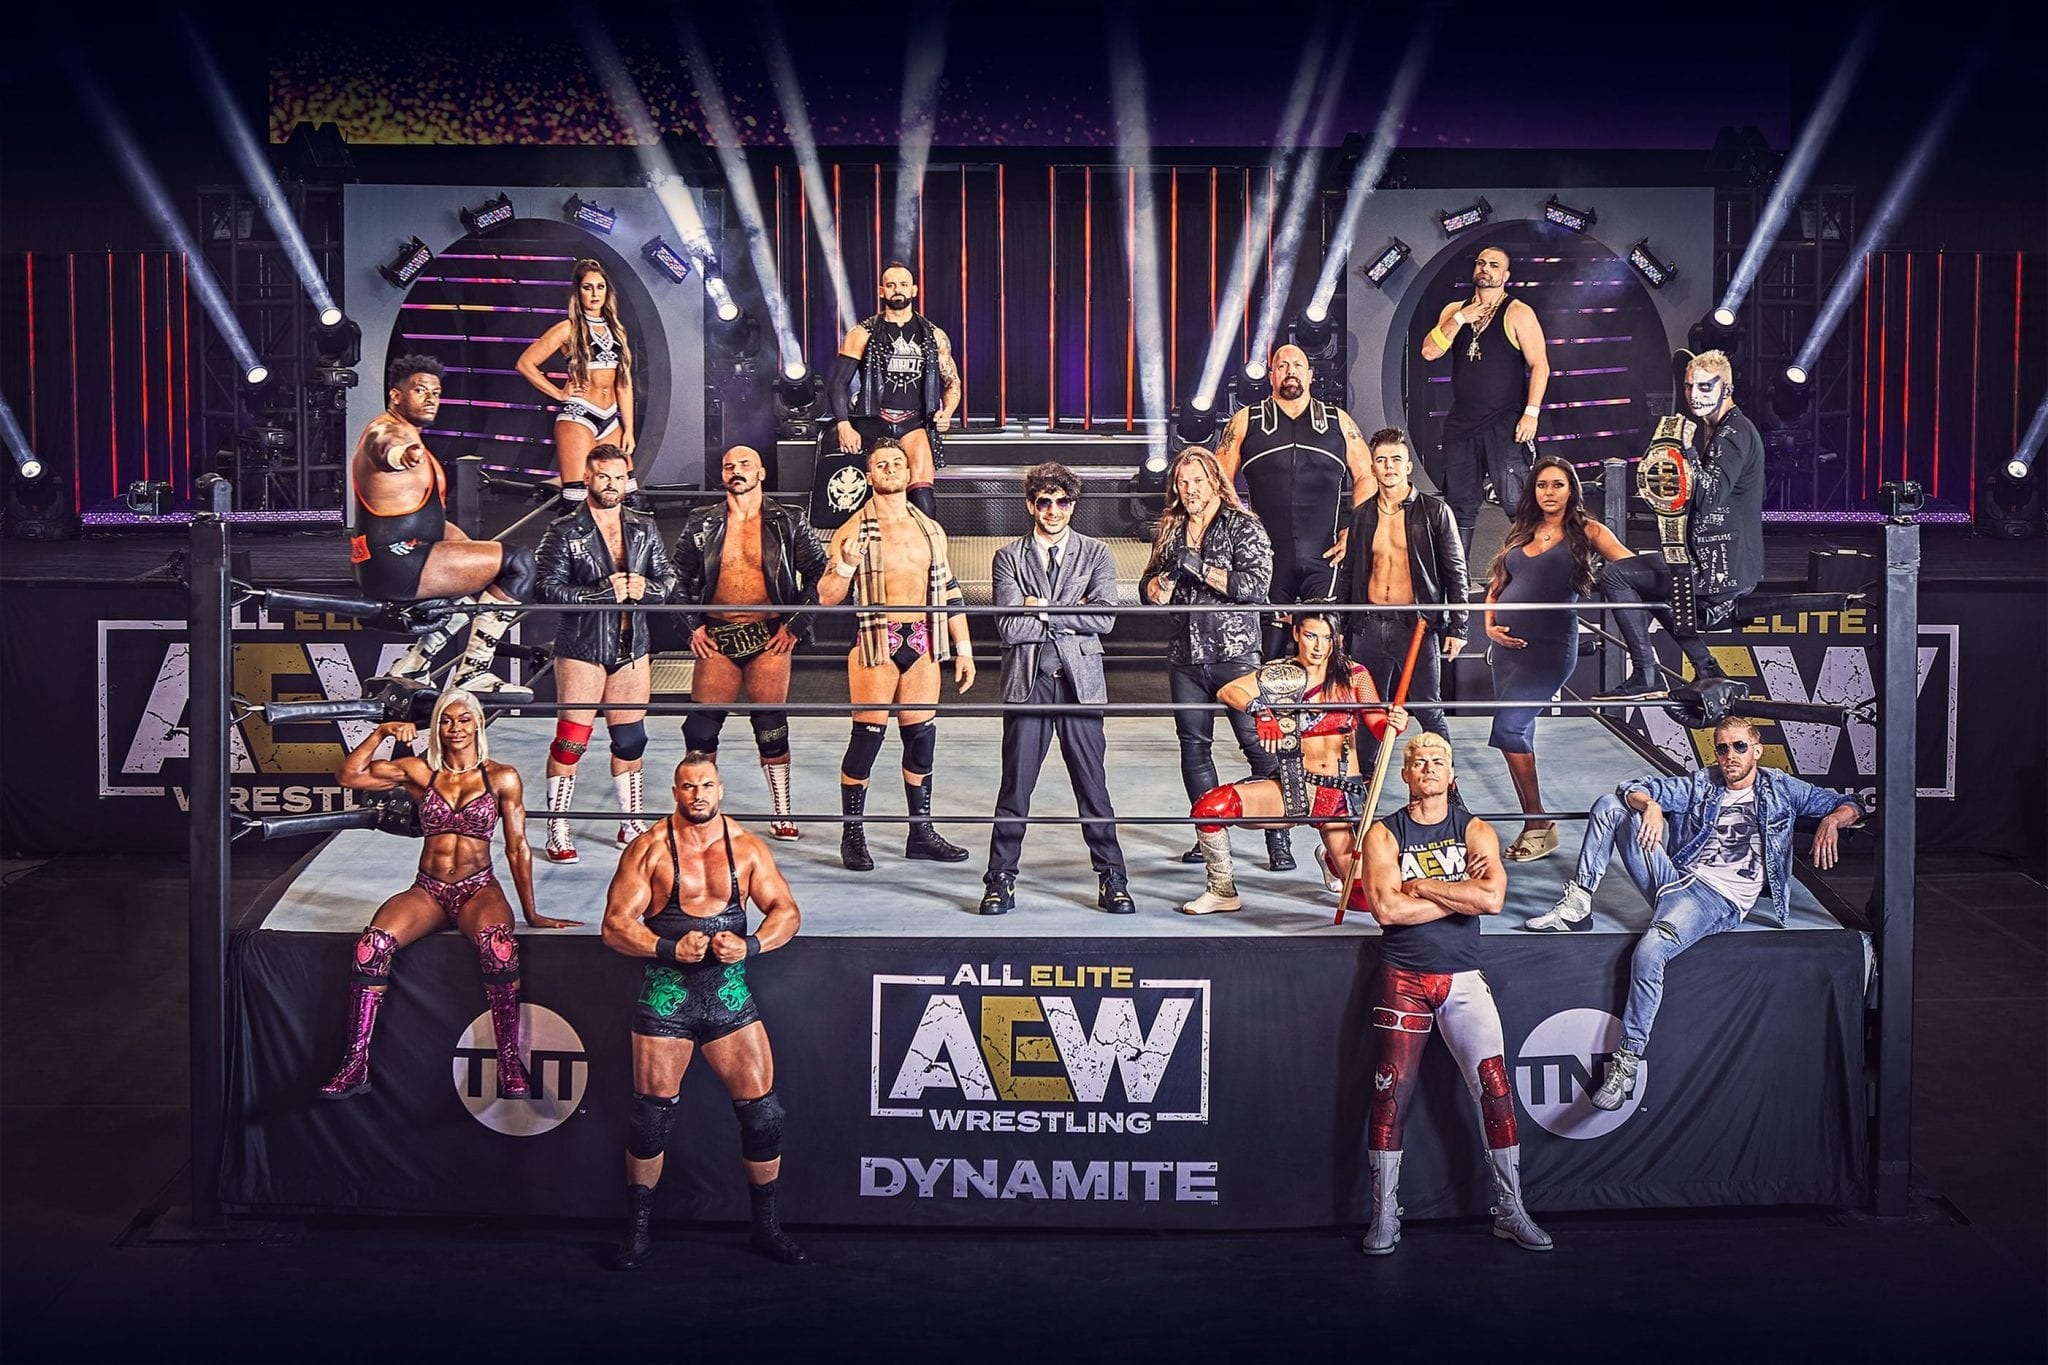 Tony Khan On How WCW Failing Helped Them, AEW Reportedly Not Yet Profitable